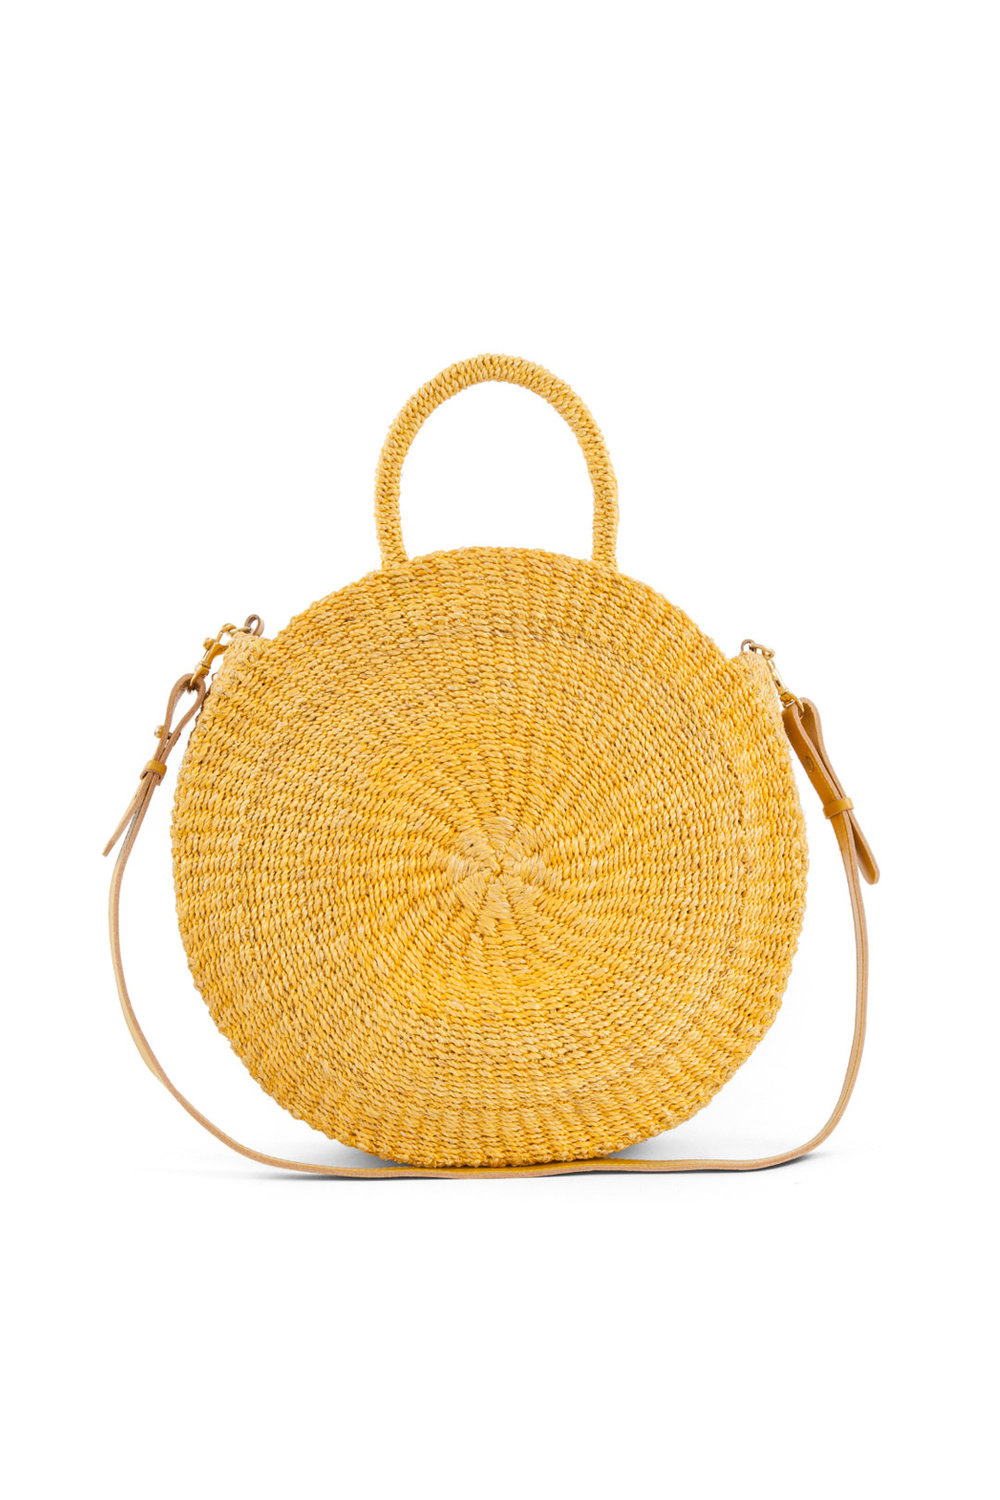 Yellow Woven Maison Bag by Clare V. from Rent the Runway